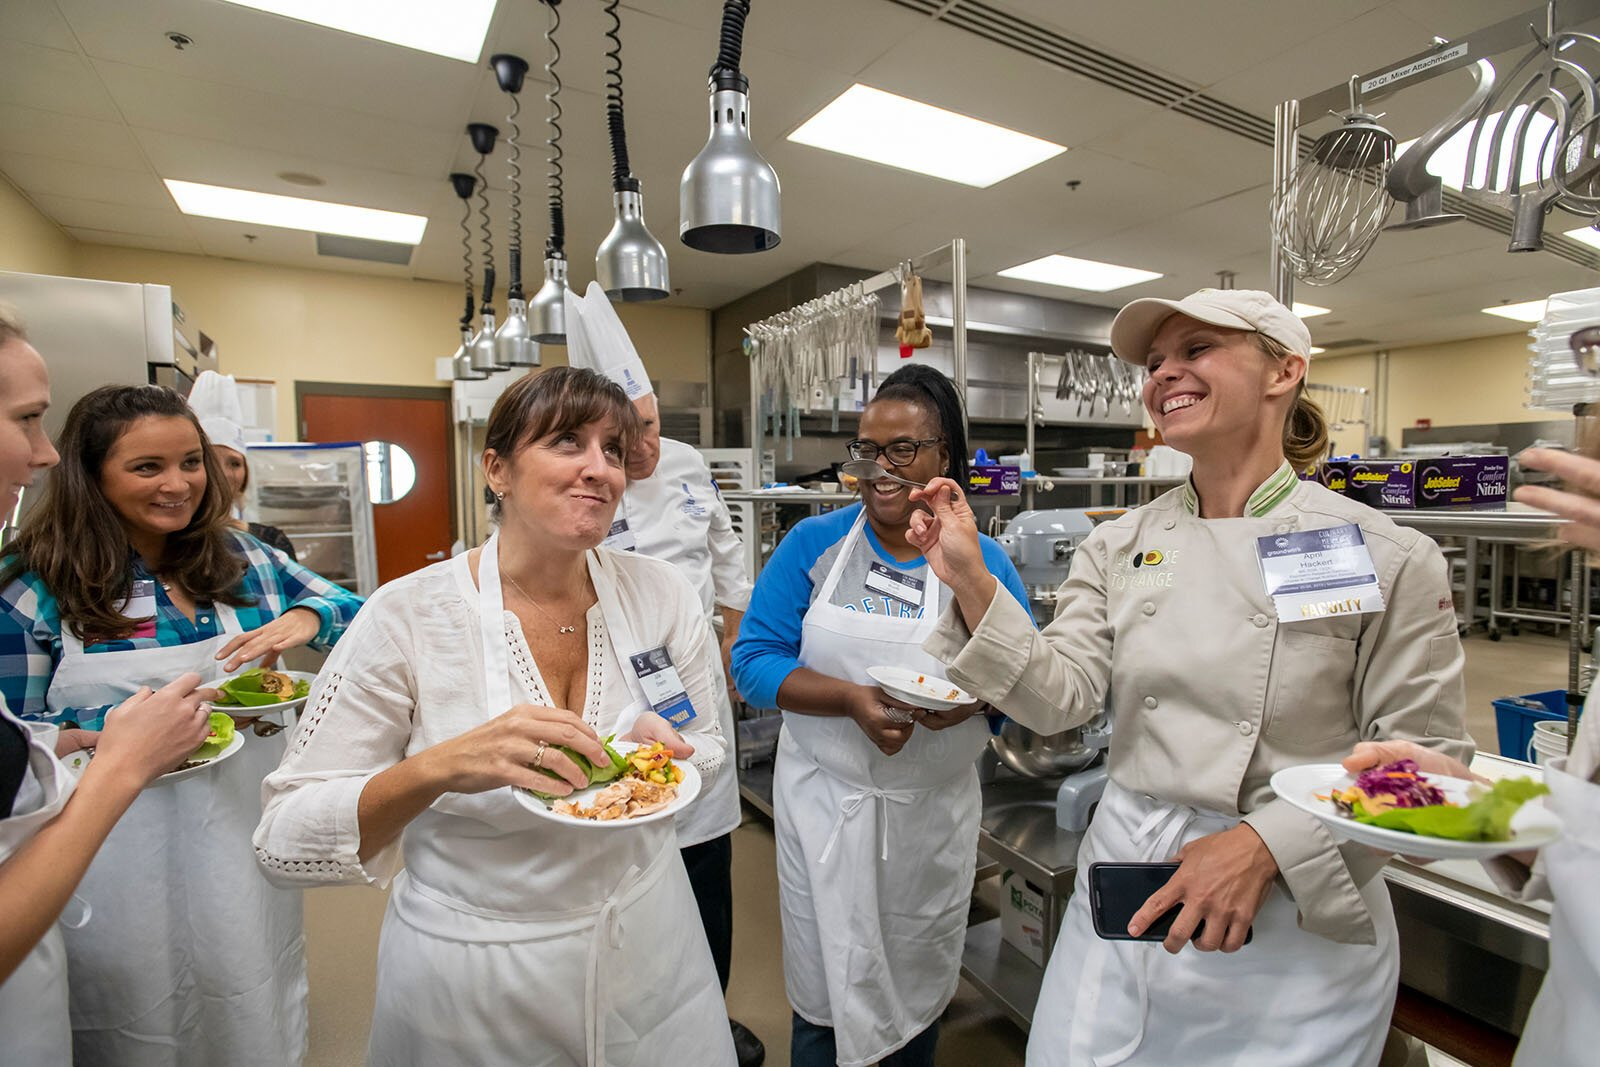 Mental health specialist, chef, and dietitian April Hackert (right in jacket) enjoys plant-forward recipes with participants at culinary medicine training offered by Groundwork Center.